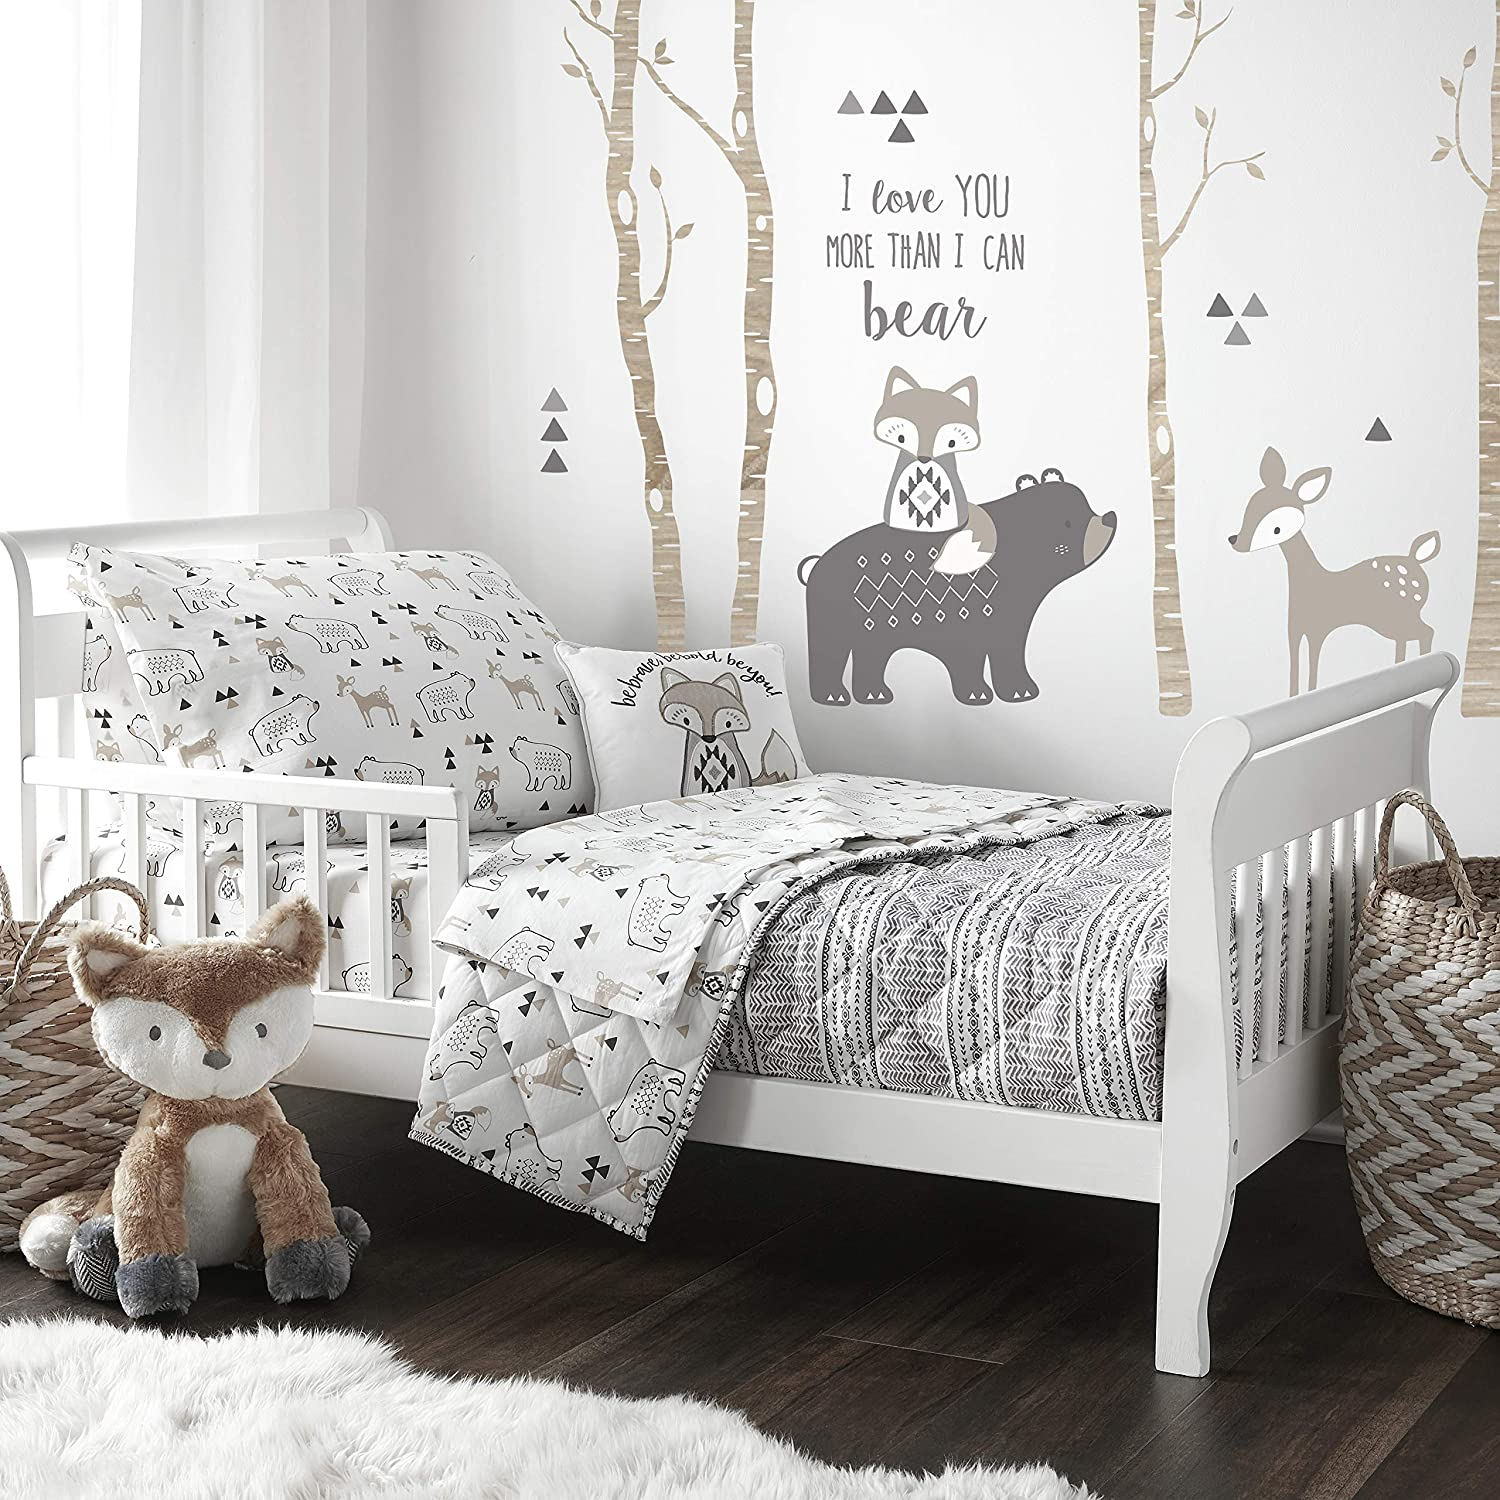 Levtex Baby - Bailey Toddler Bed Set - Charcoal Grey, White, Taupe - Woodland - 5 Piece Set Includes Reversible Quilt, Fitted Sheet, Flat Sheet, Pillow Case, Decorative Pilow